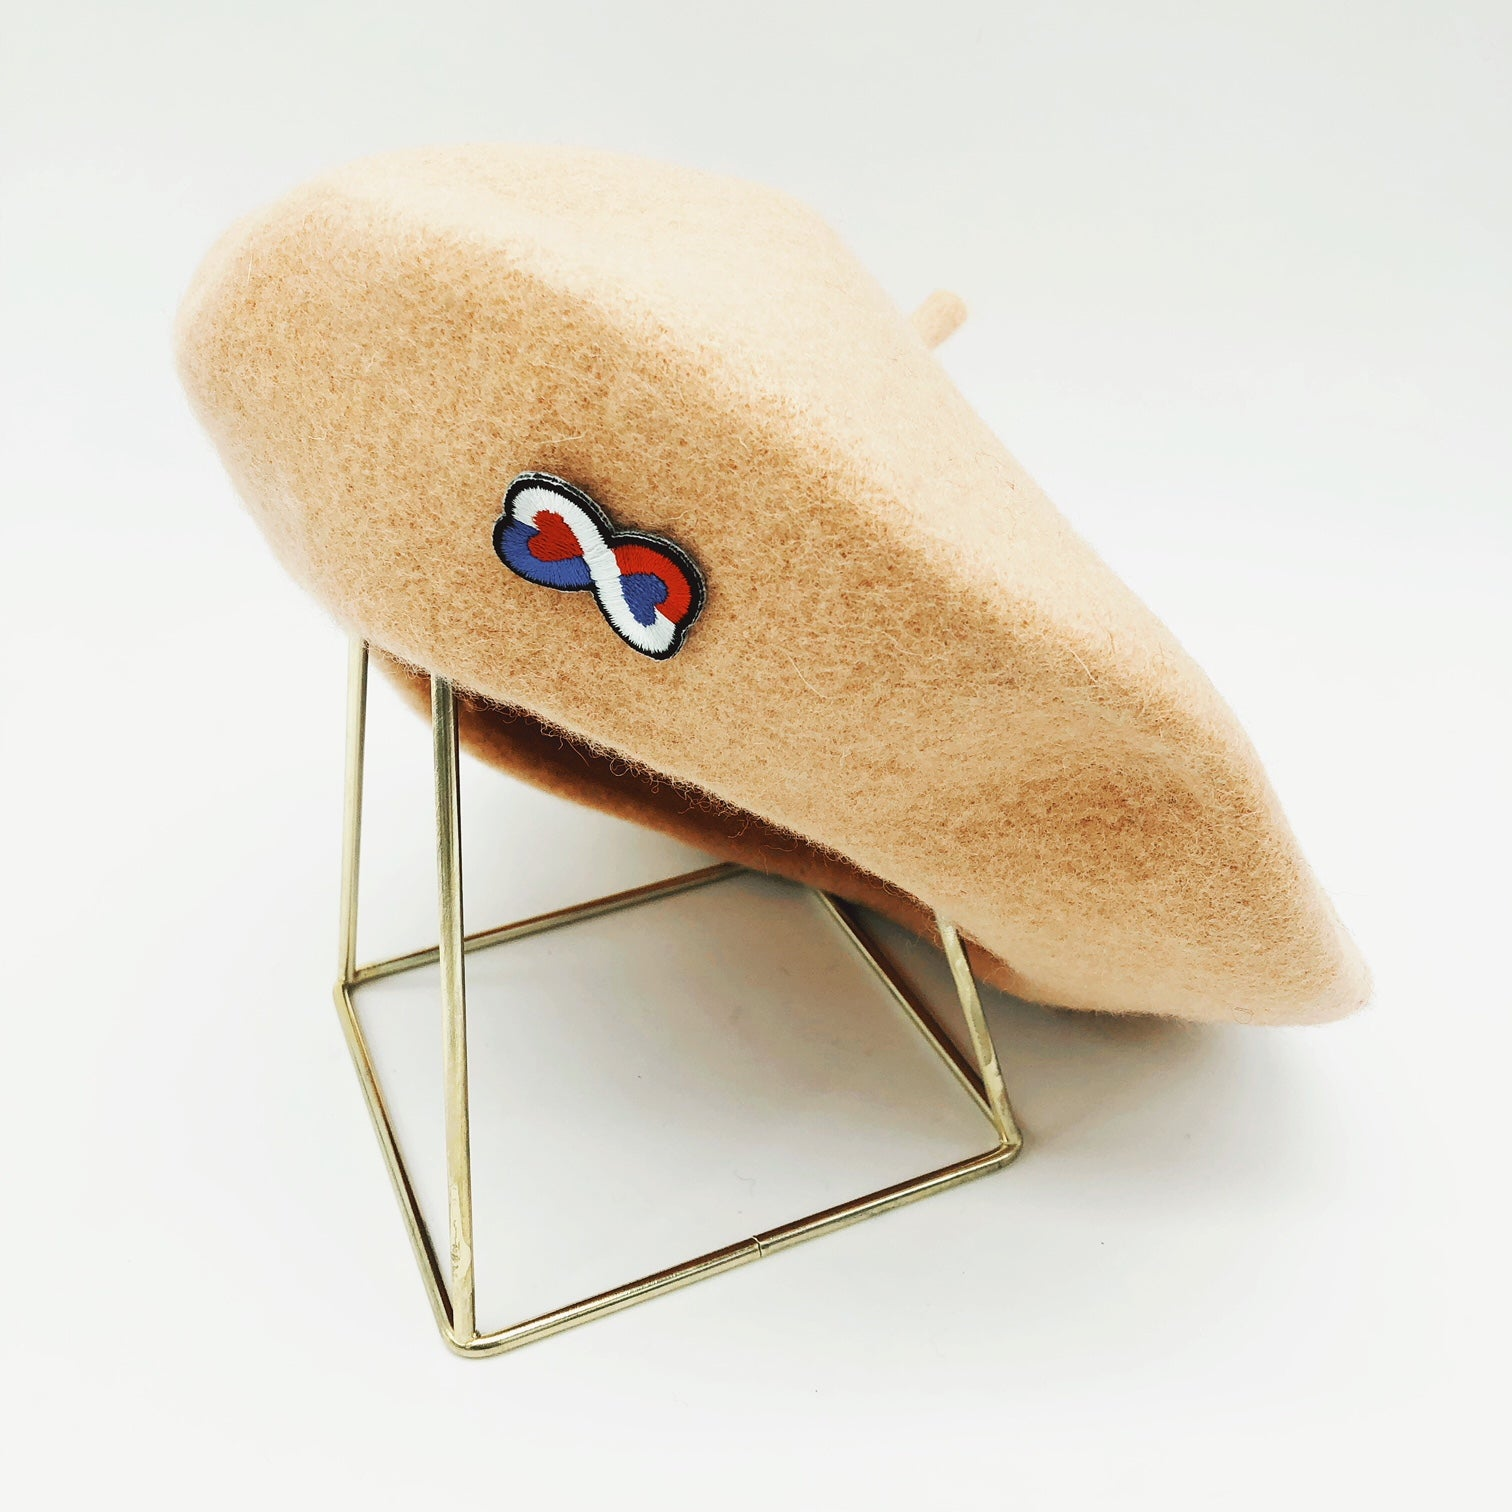 béret-camel-coeur-tricolore-french-frenchie-laine-gili